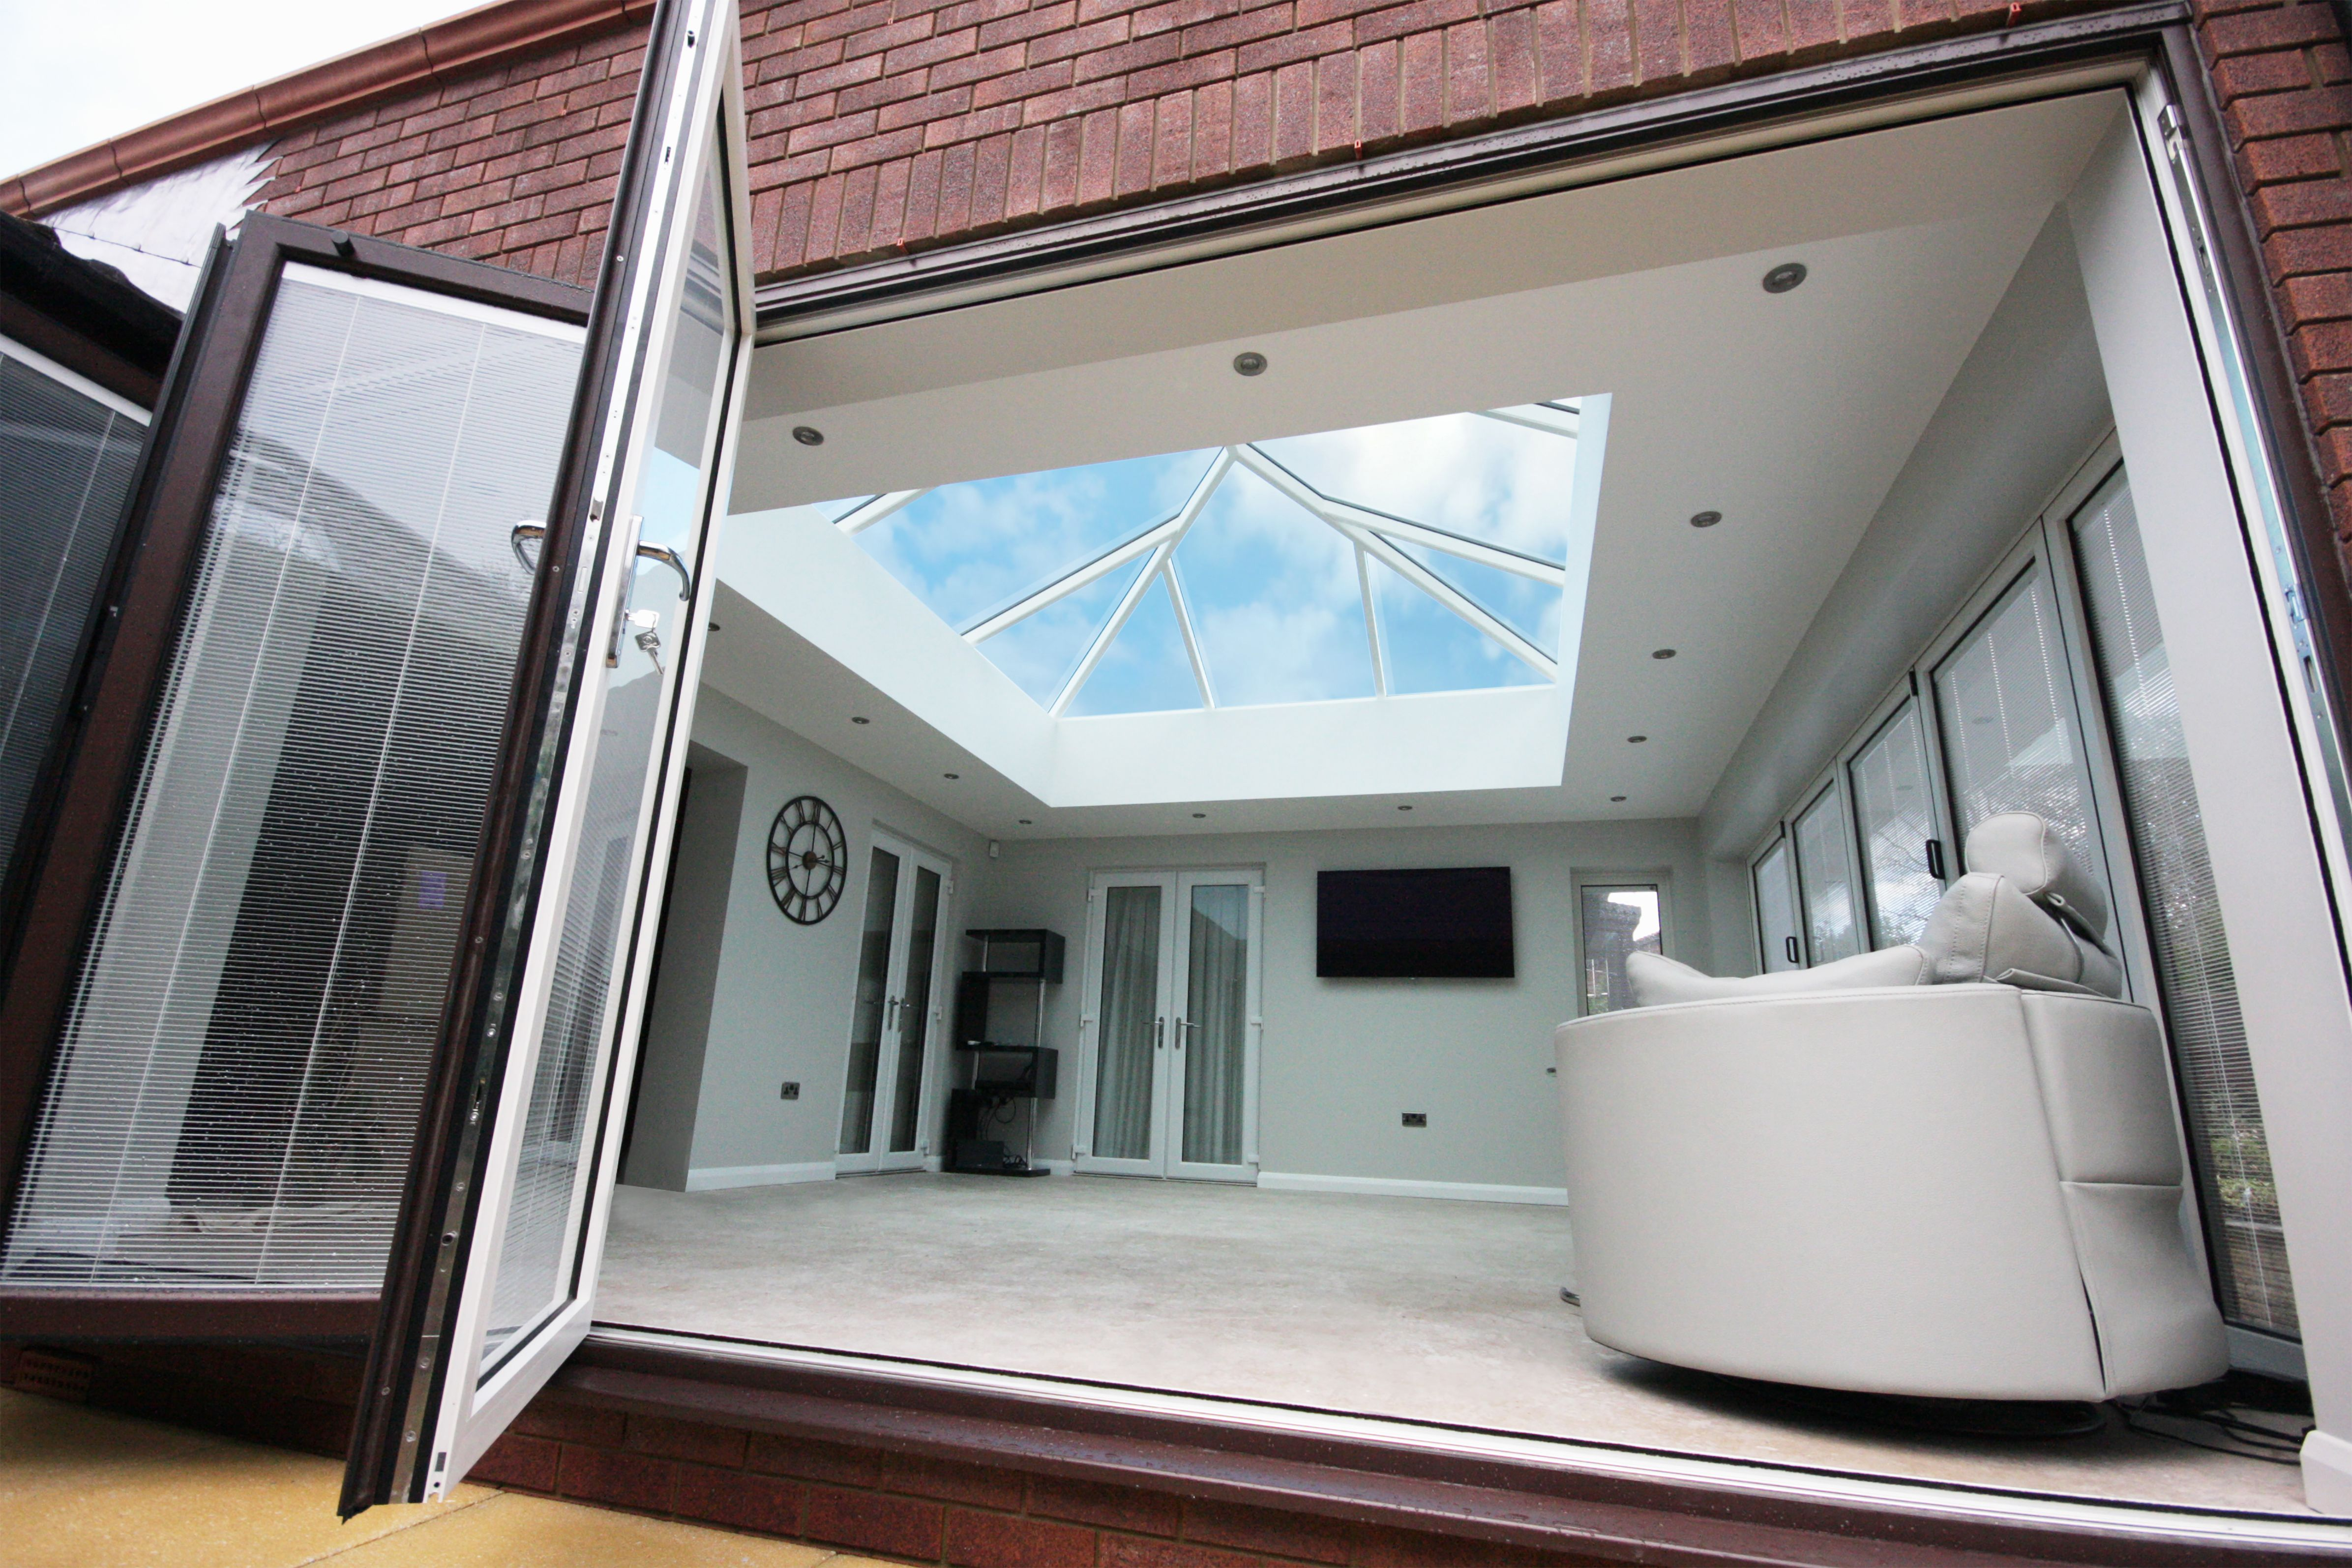 Flat Roof Orangery Supalite Tiled Roof Systems